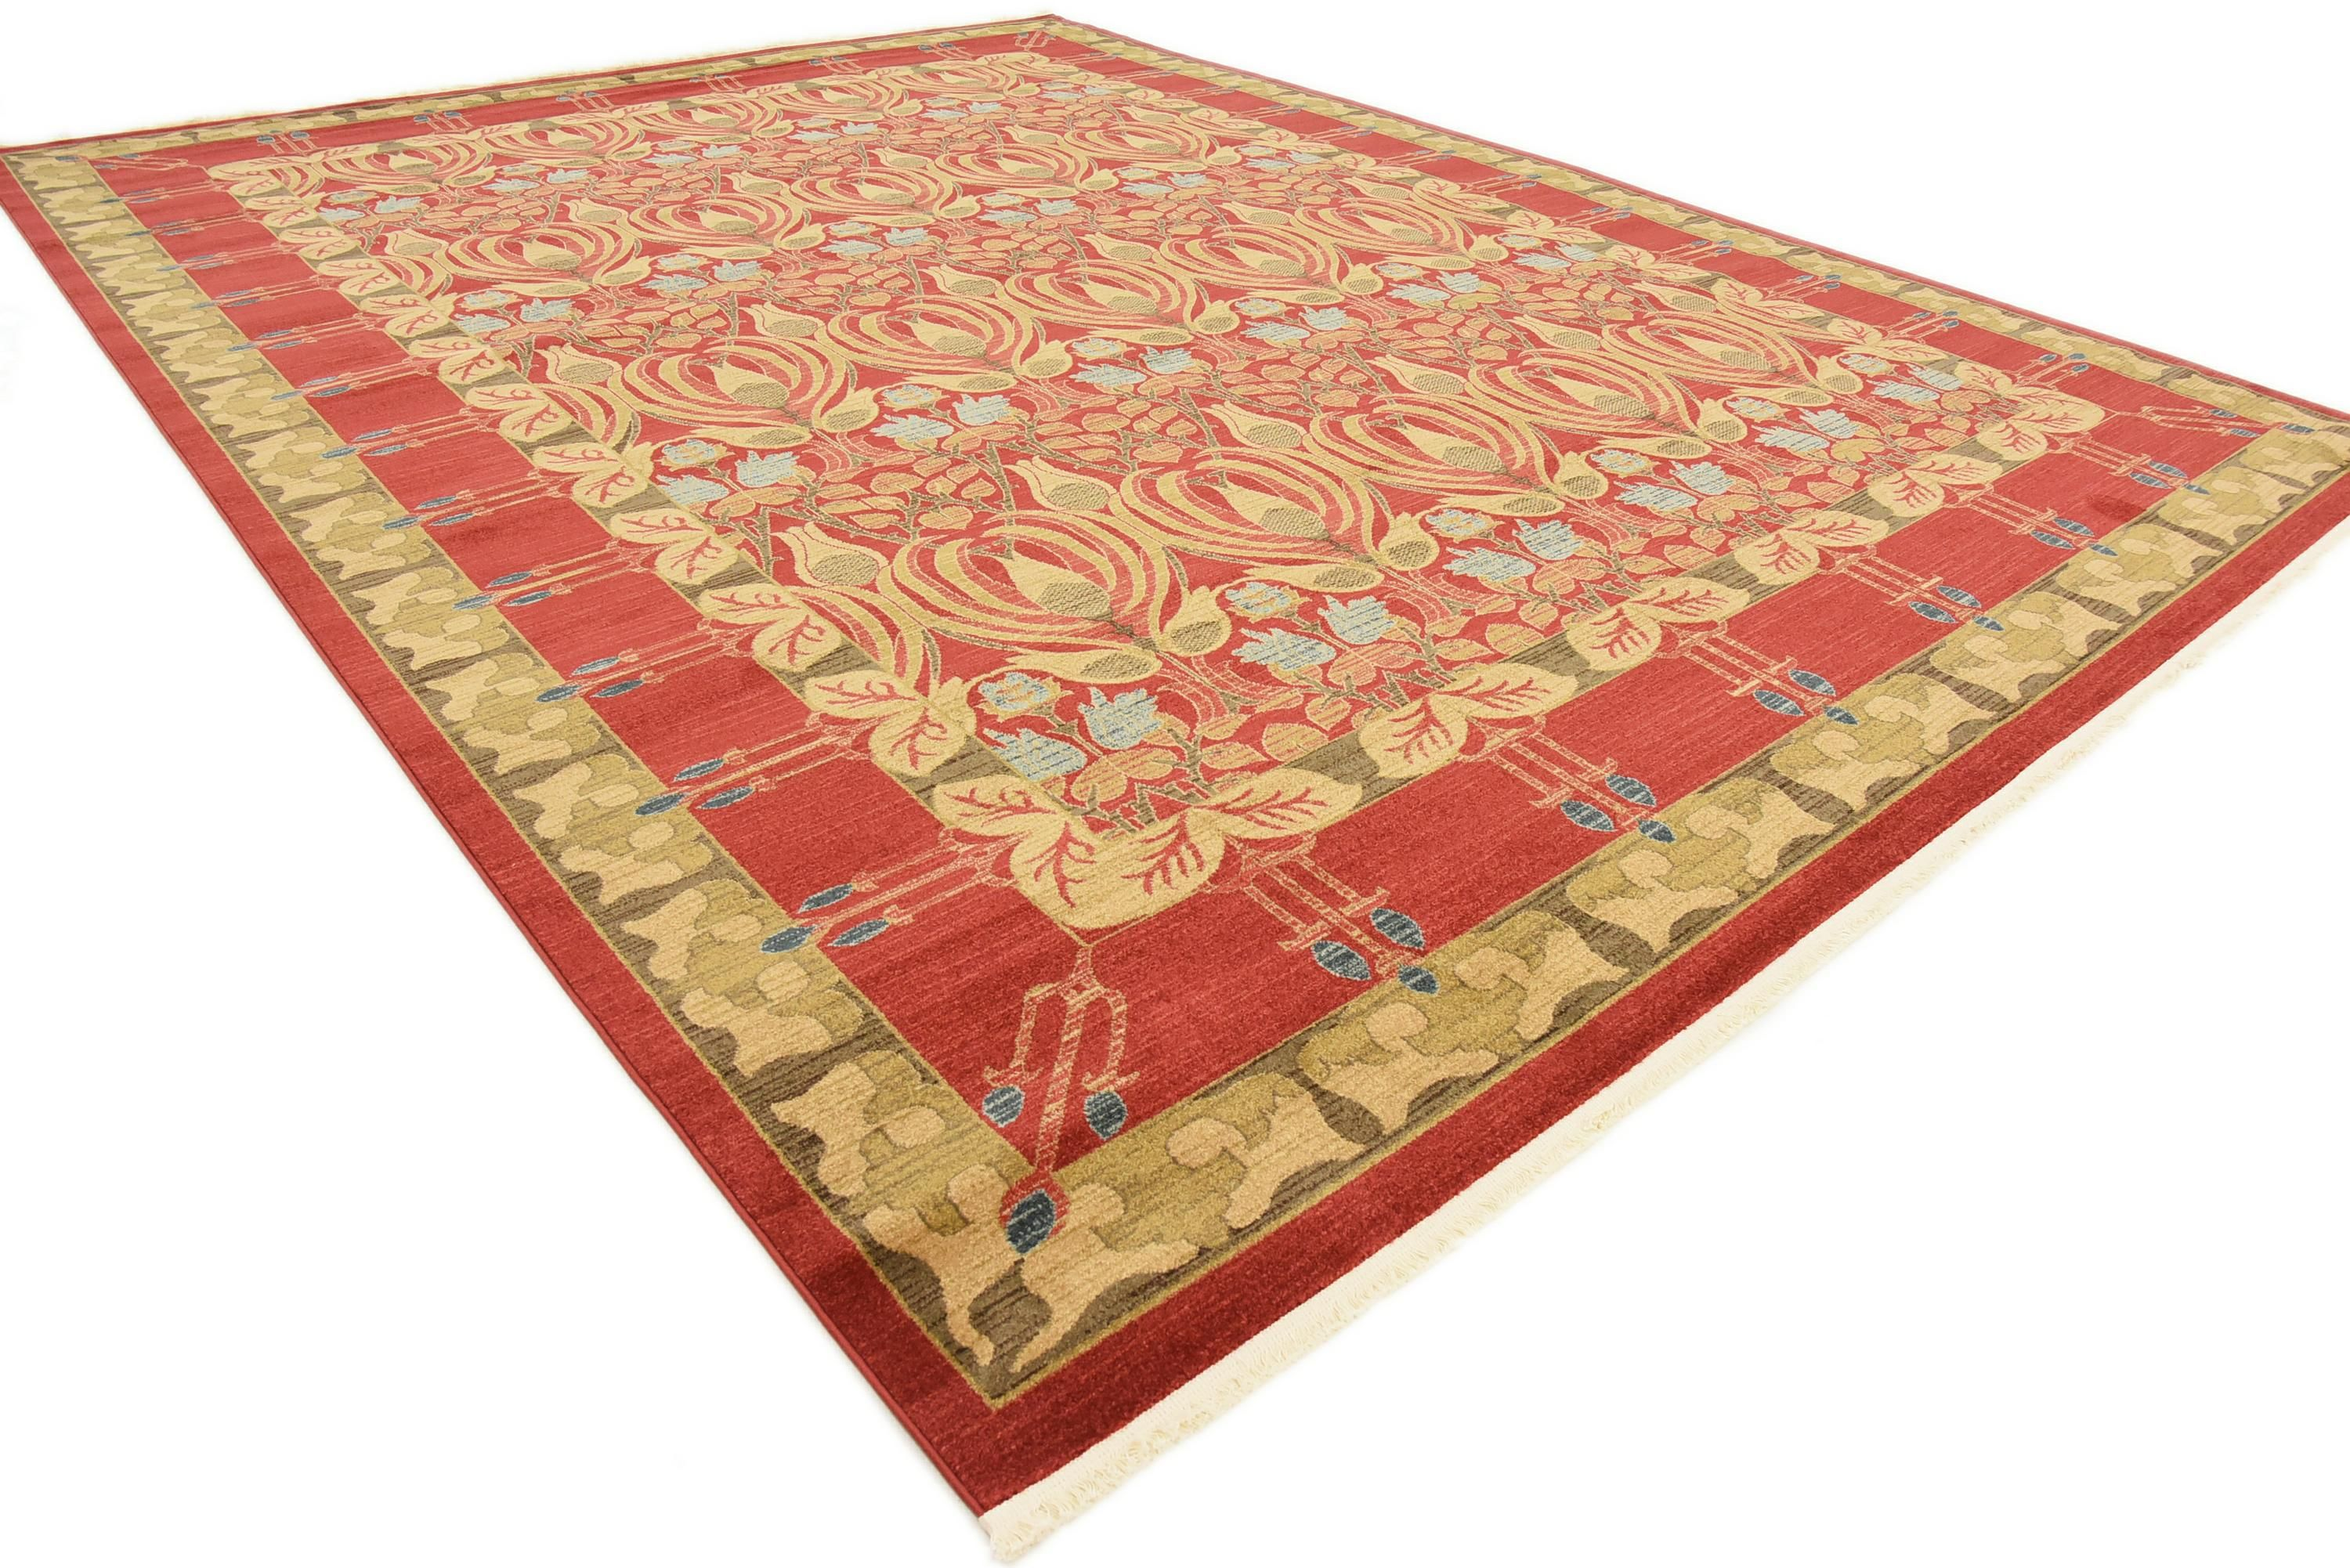 Red 12 2 X 16 Kensington Rug Affiliate Red Rug Kensington Sponsored Vintage House Buy Rugs Rugs